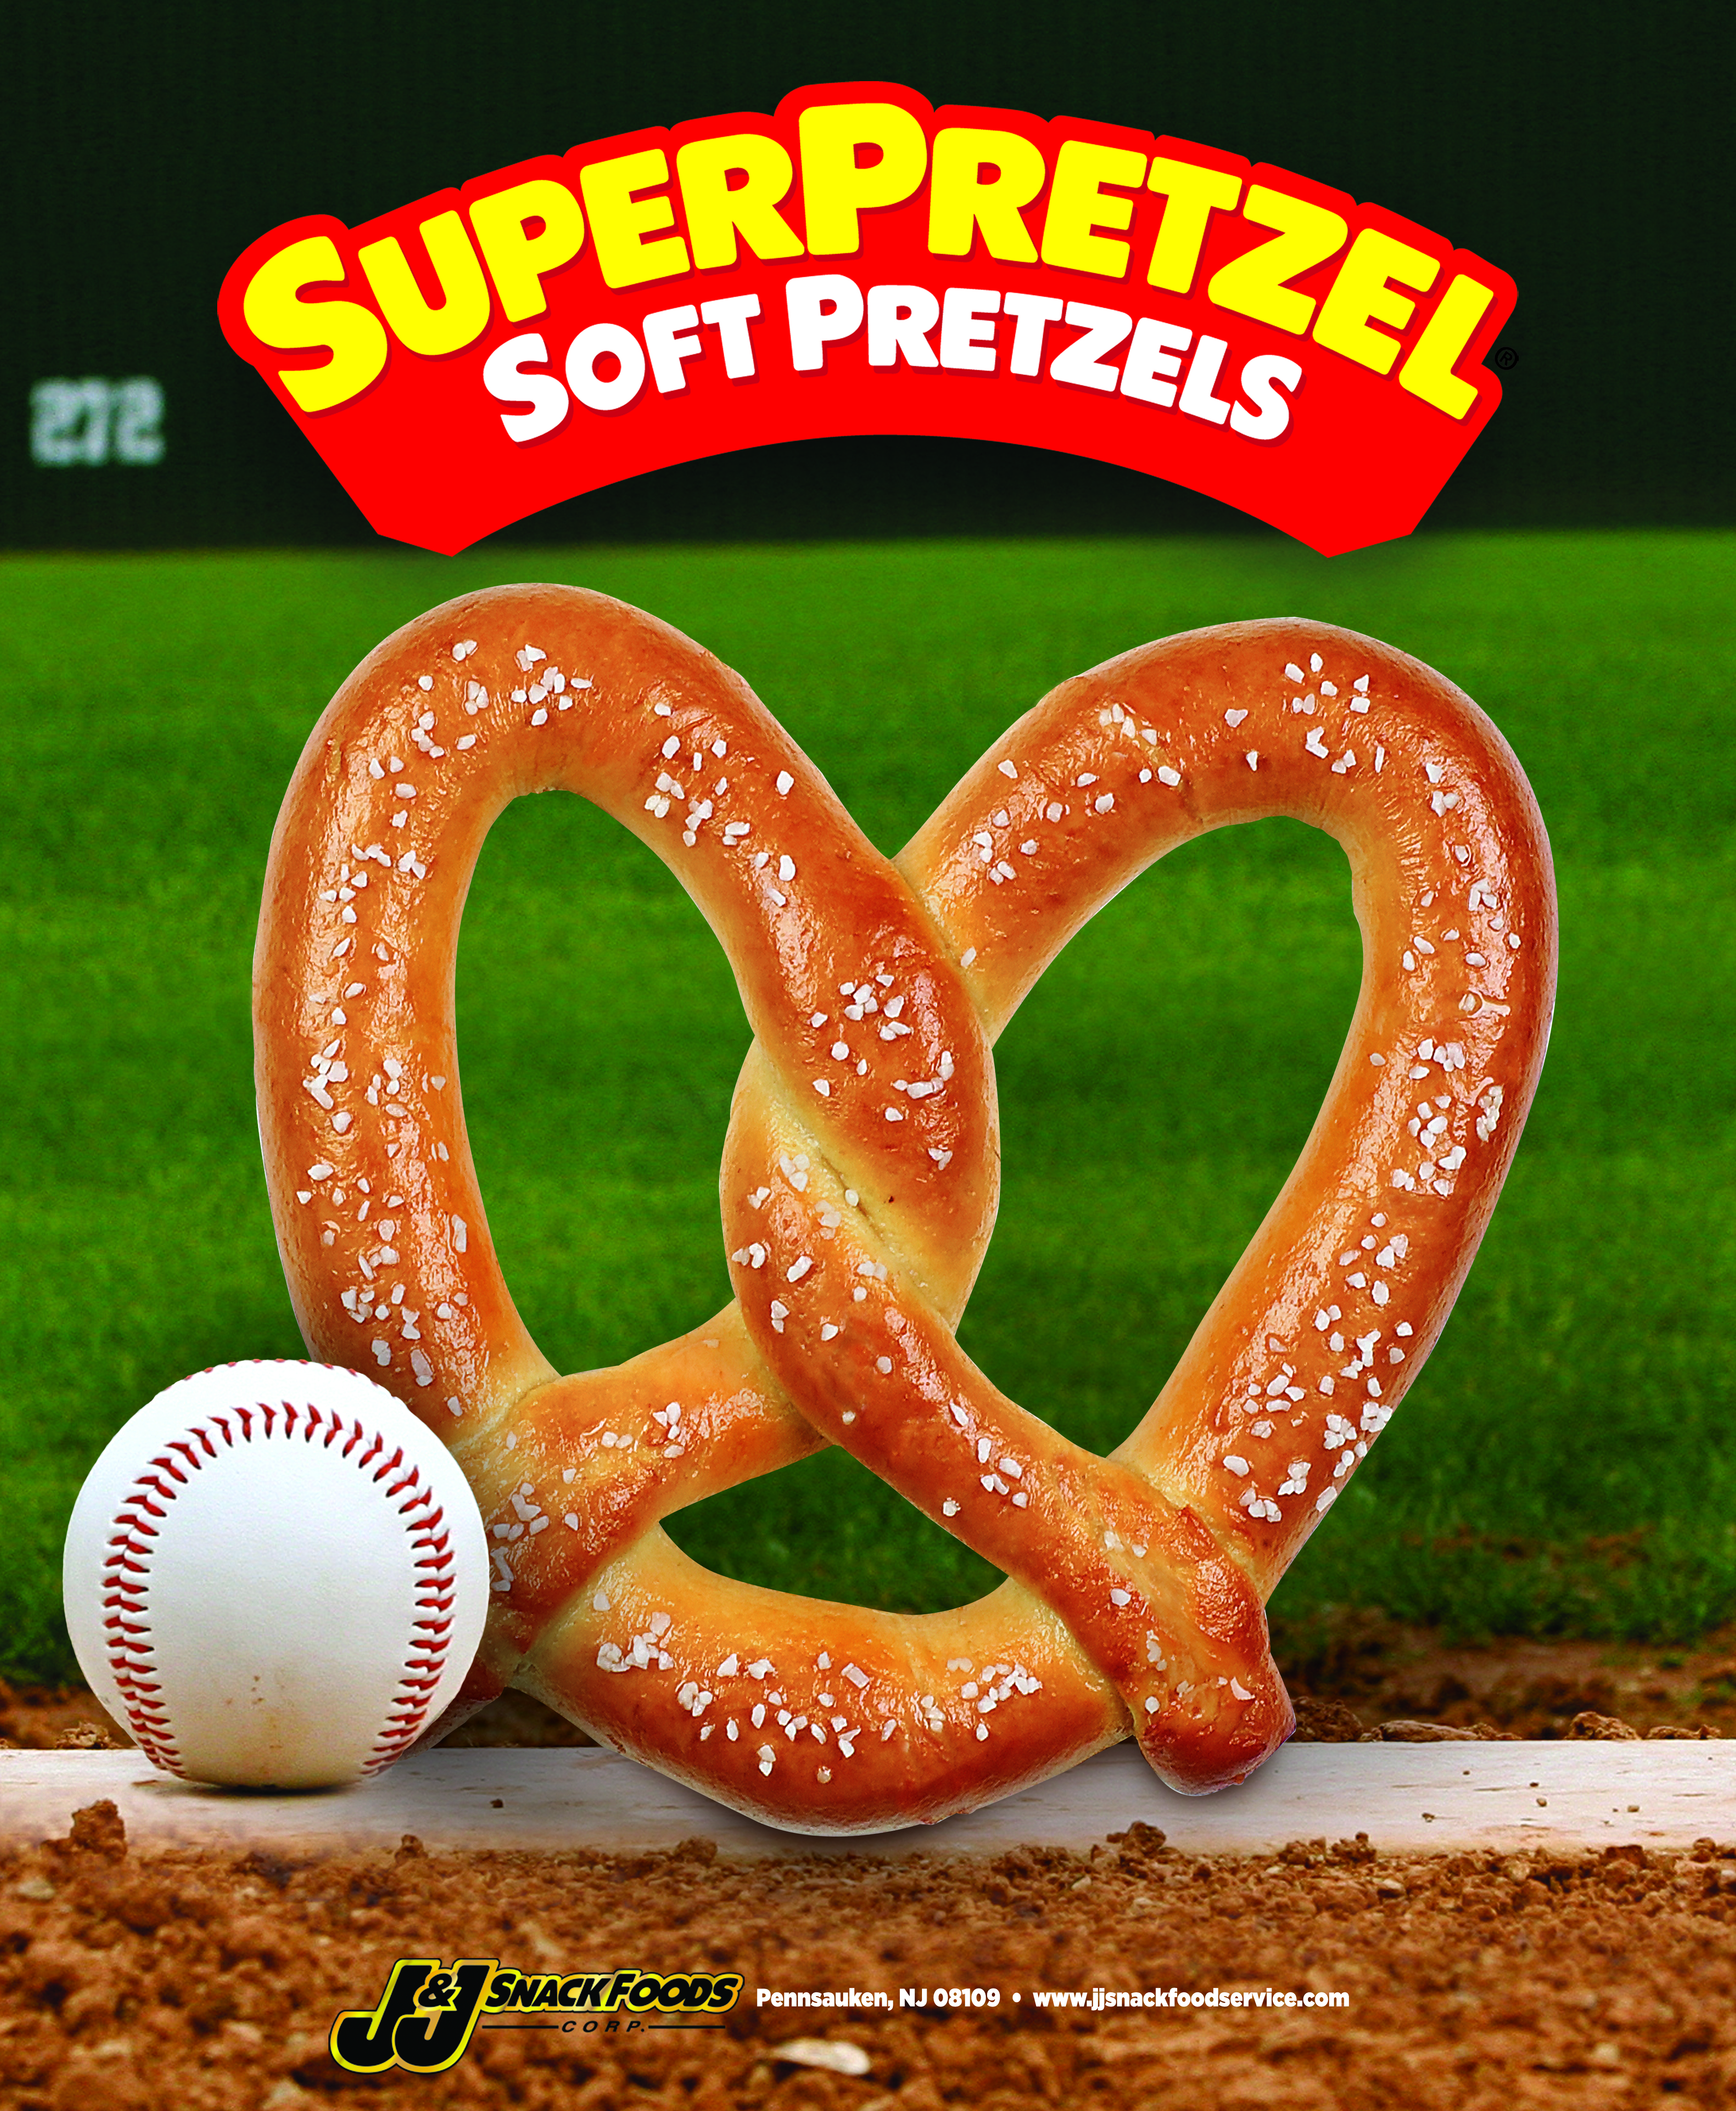 SUPERPRETZEL® Soft Pretzel King Size Baseball Themed Poster